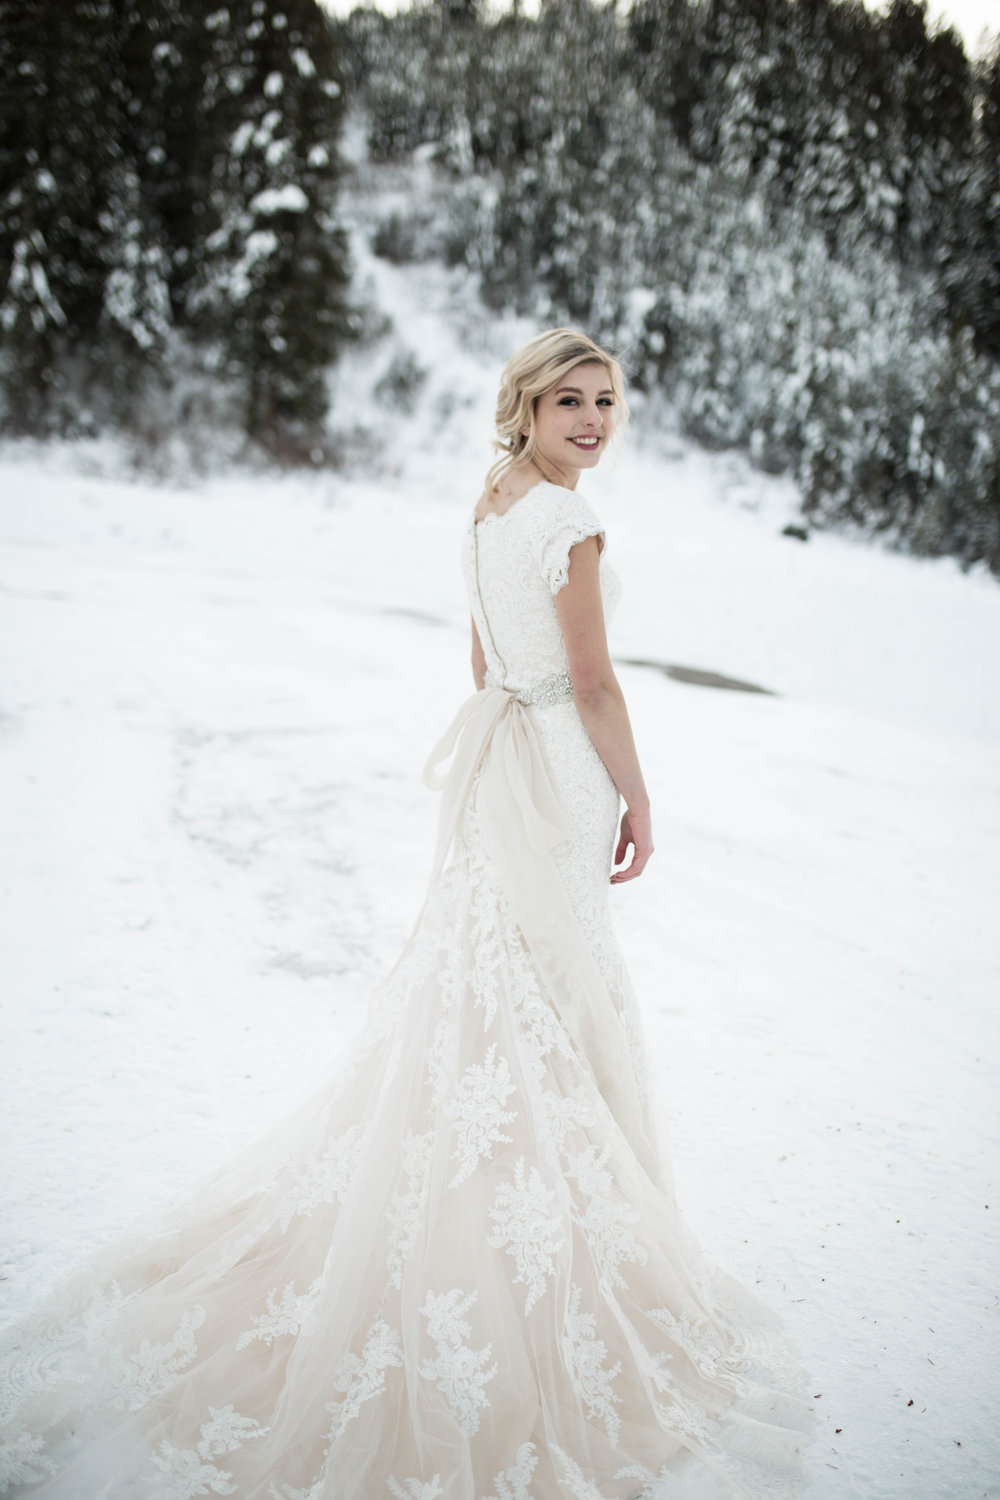 WinterWeddingBridalsTarghee (95 of 121).jpg